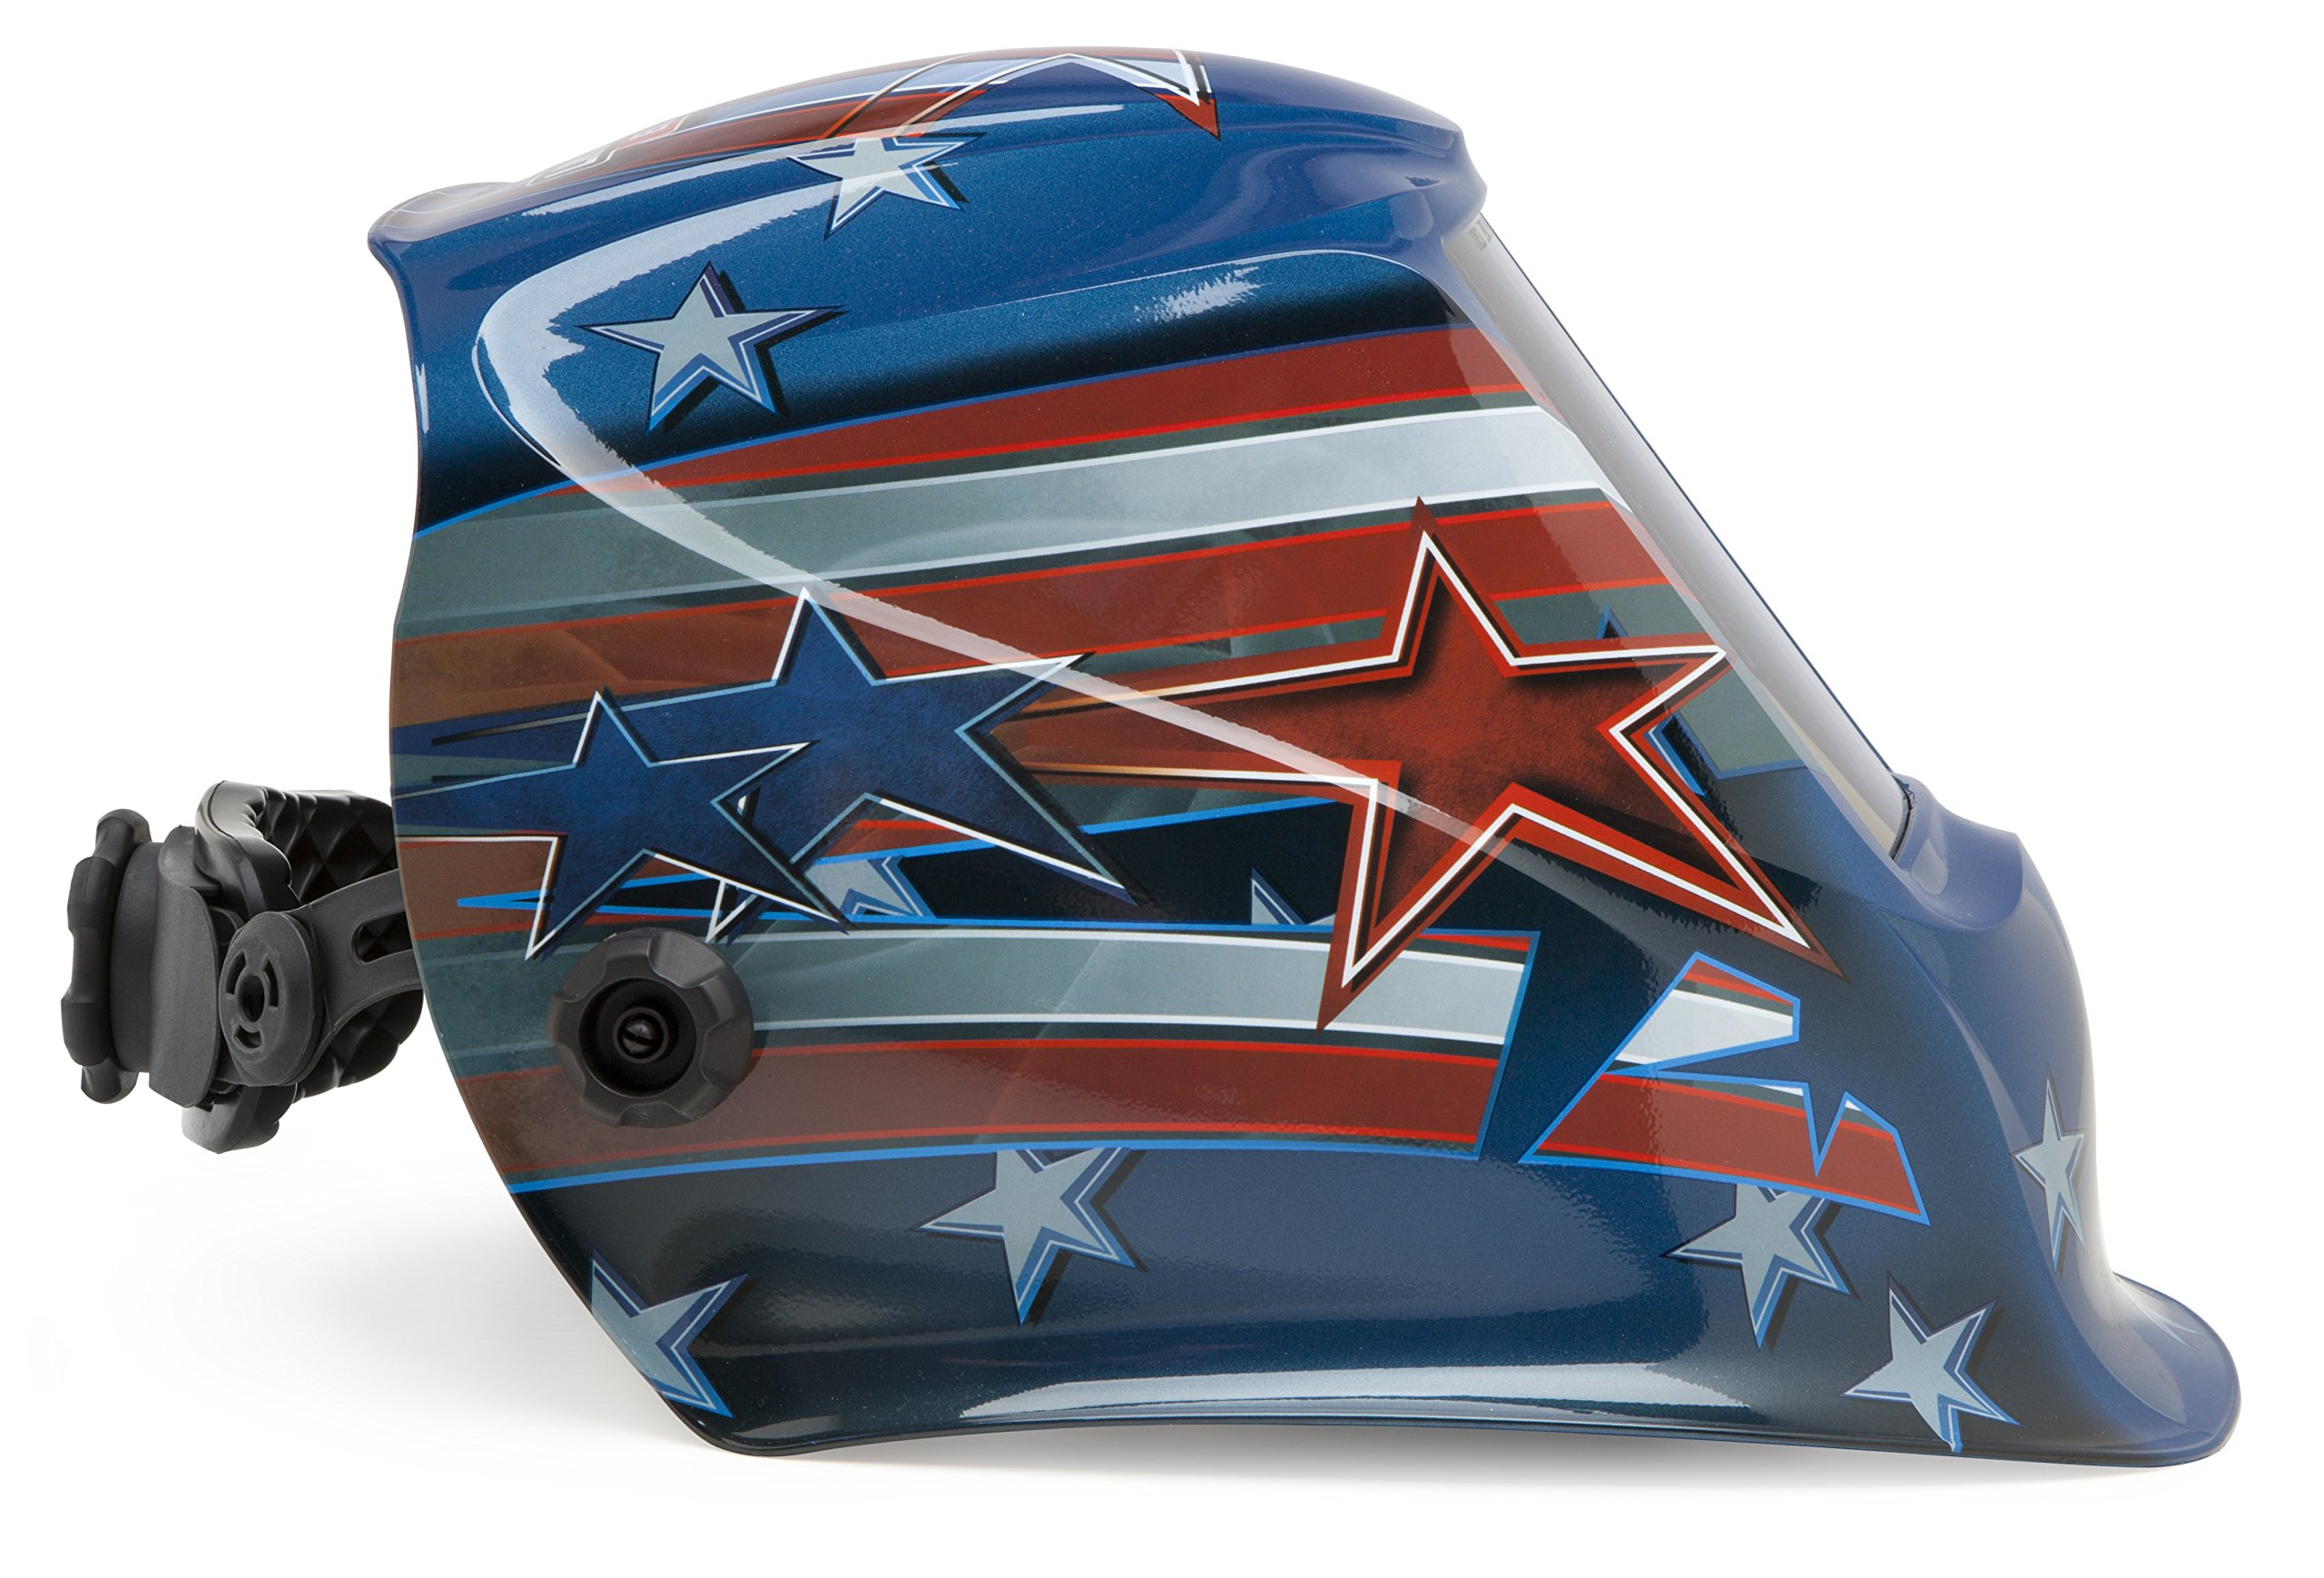 Lincoln Electric VIKING 2450 All American Welding Helmet with 4C Lens Technology - K3174-3 by Lincoln Electric (Image #4)